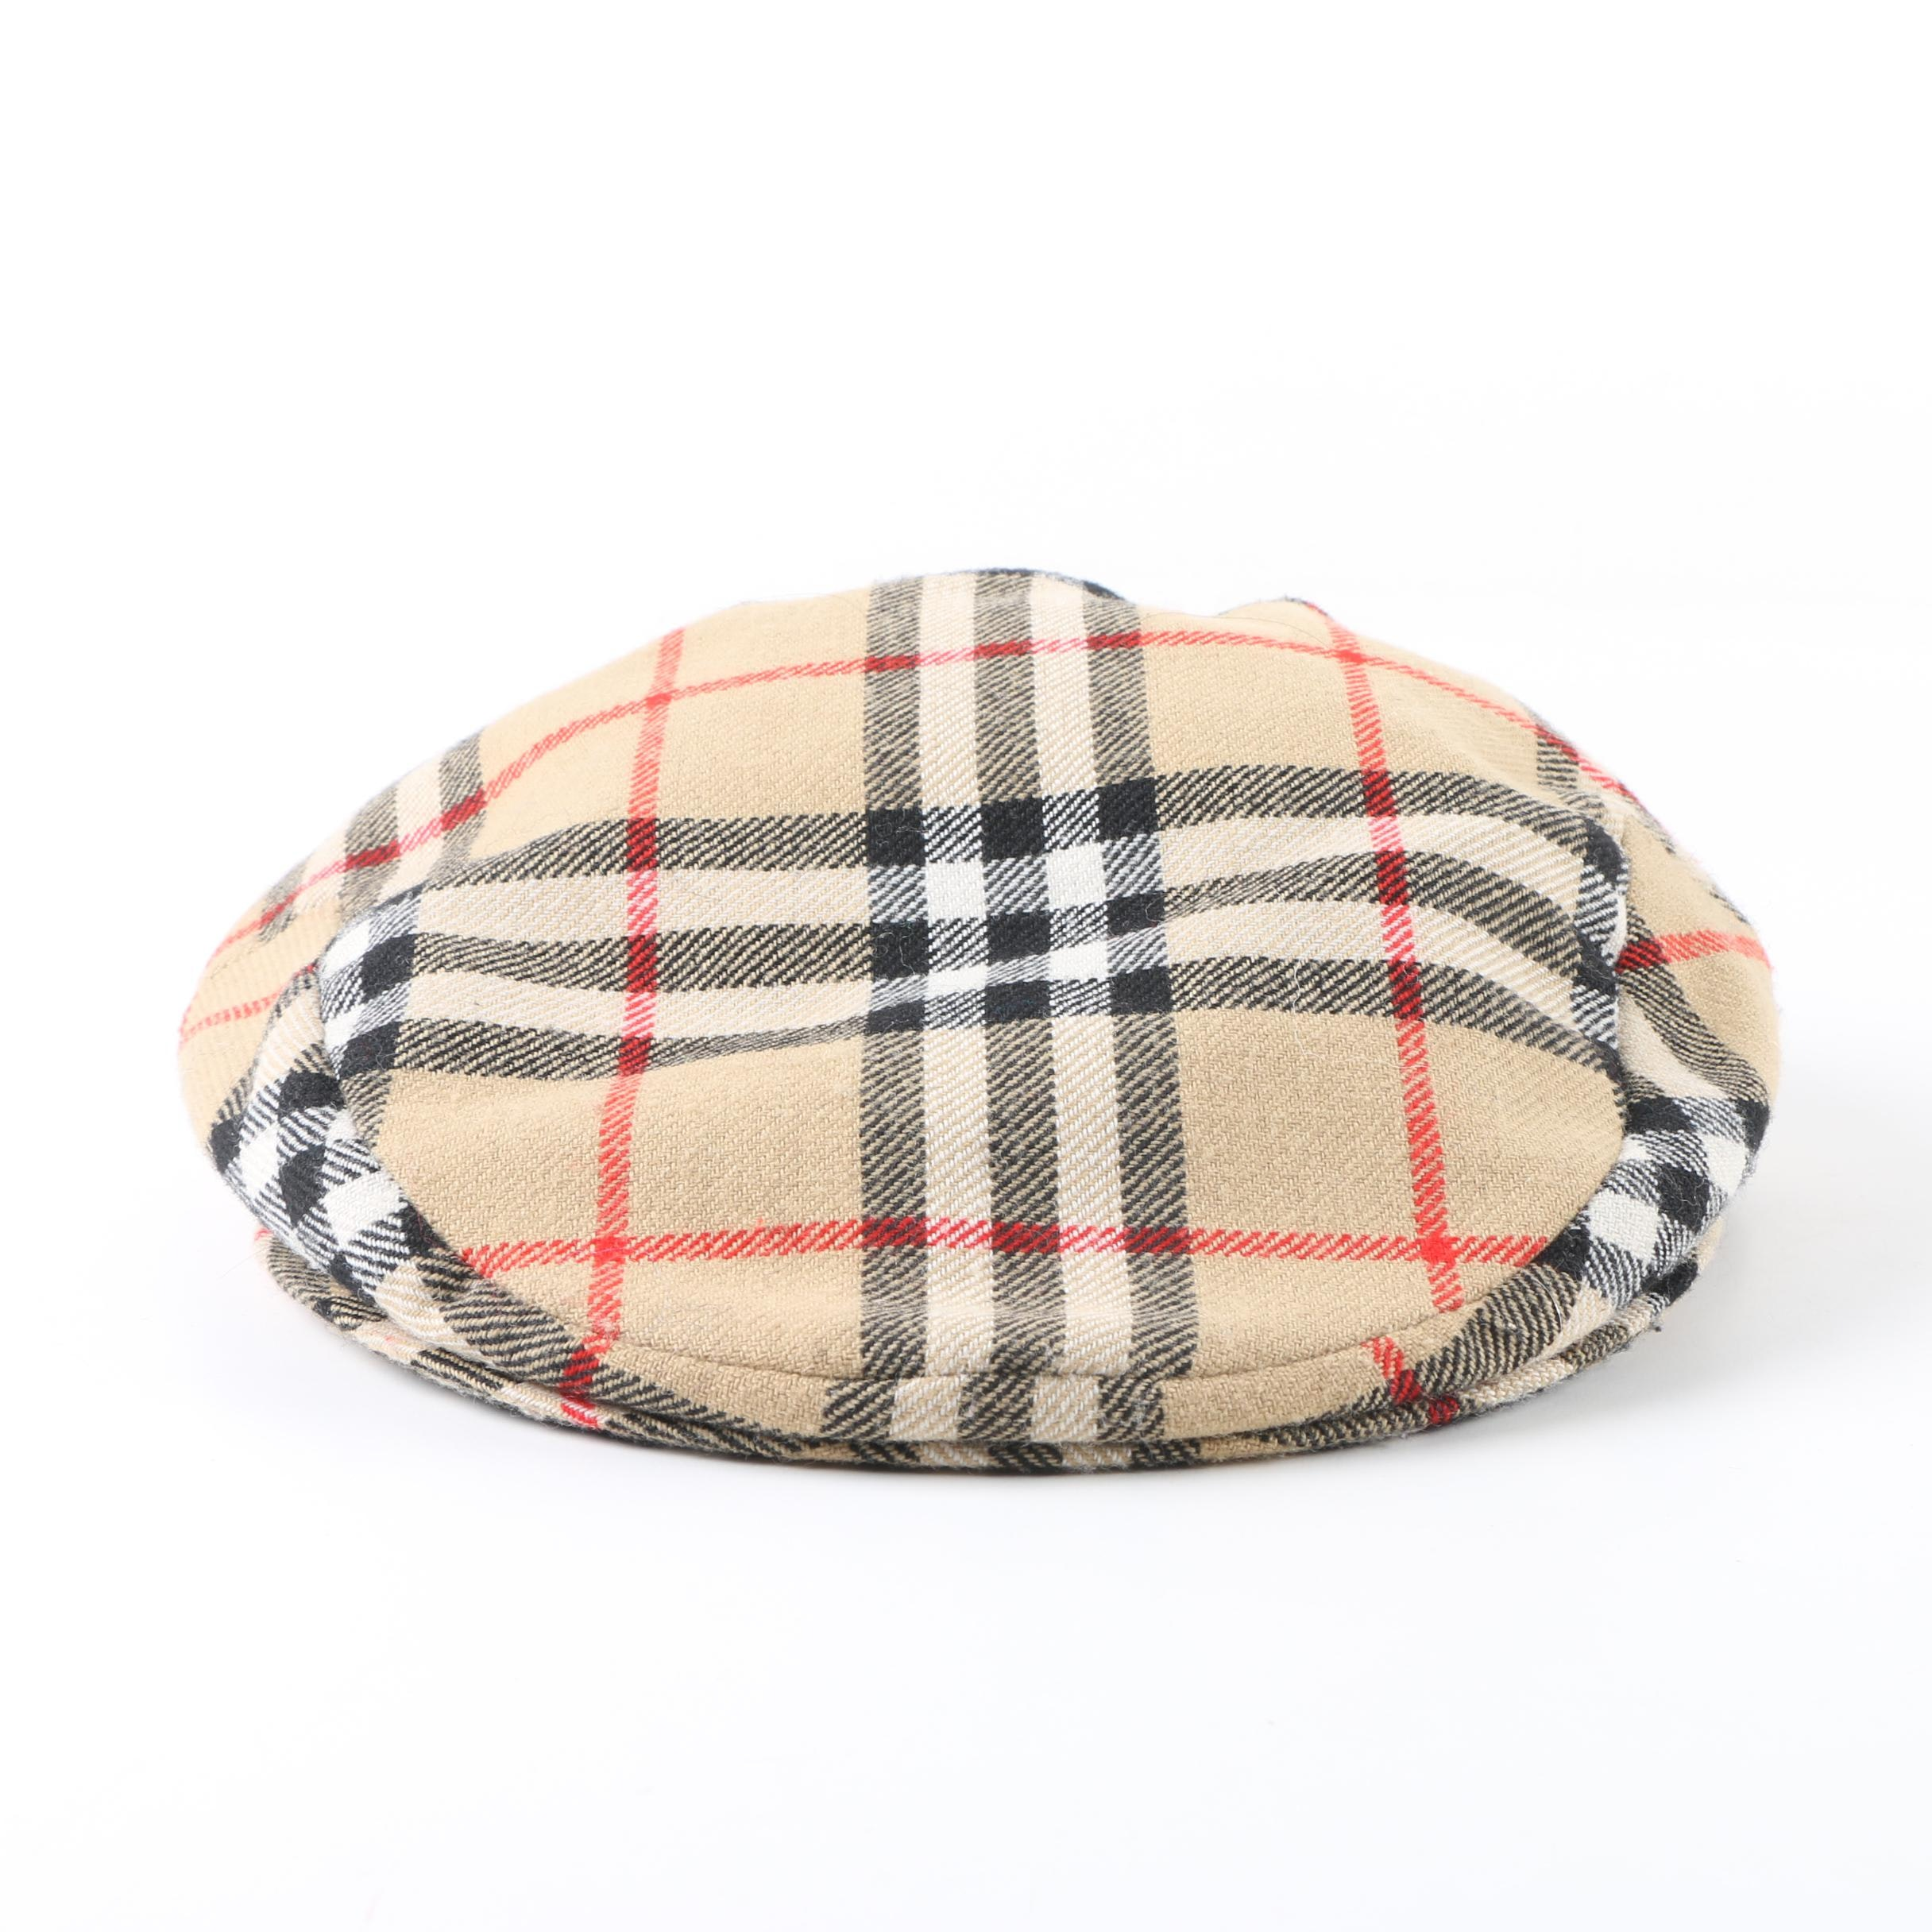 Men's Burberry Nova Check Plaid Wool Newsboy Cap